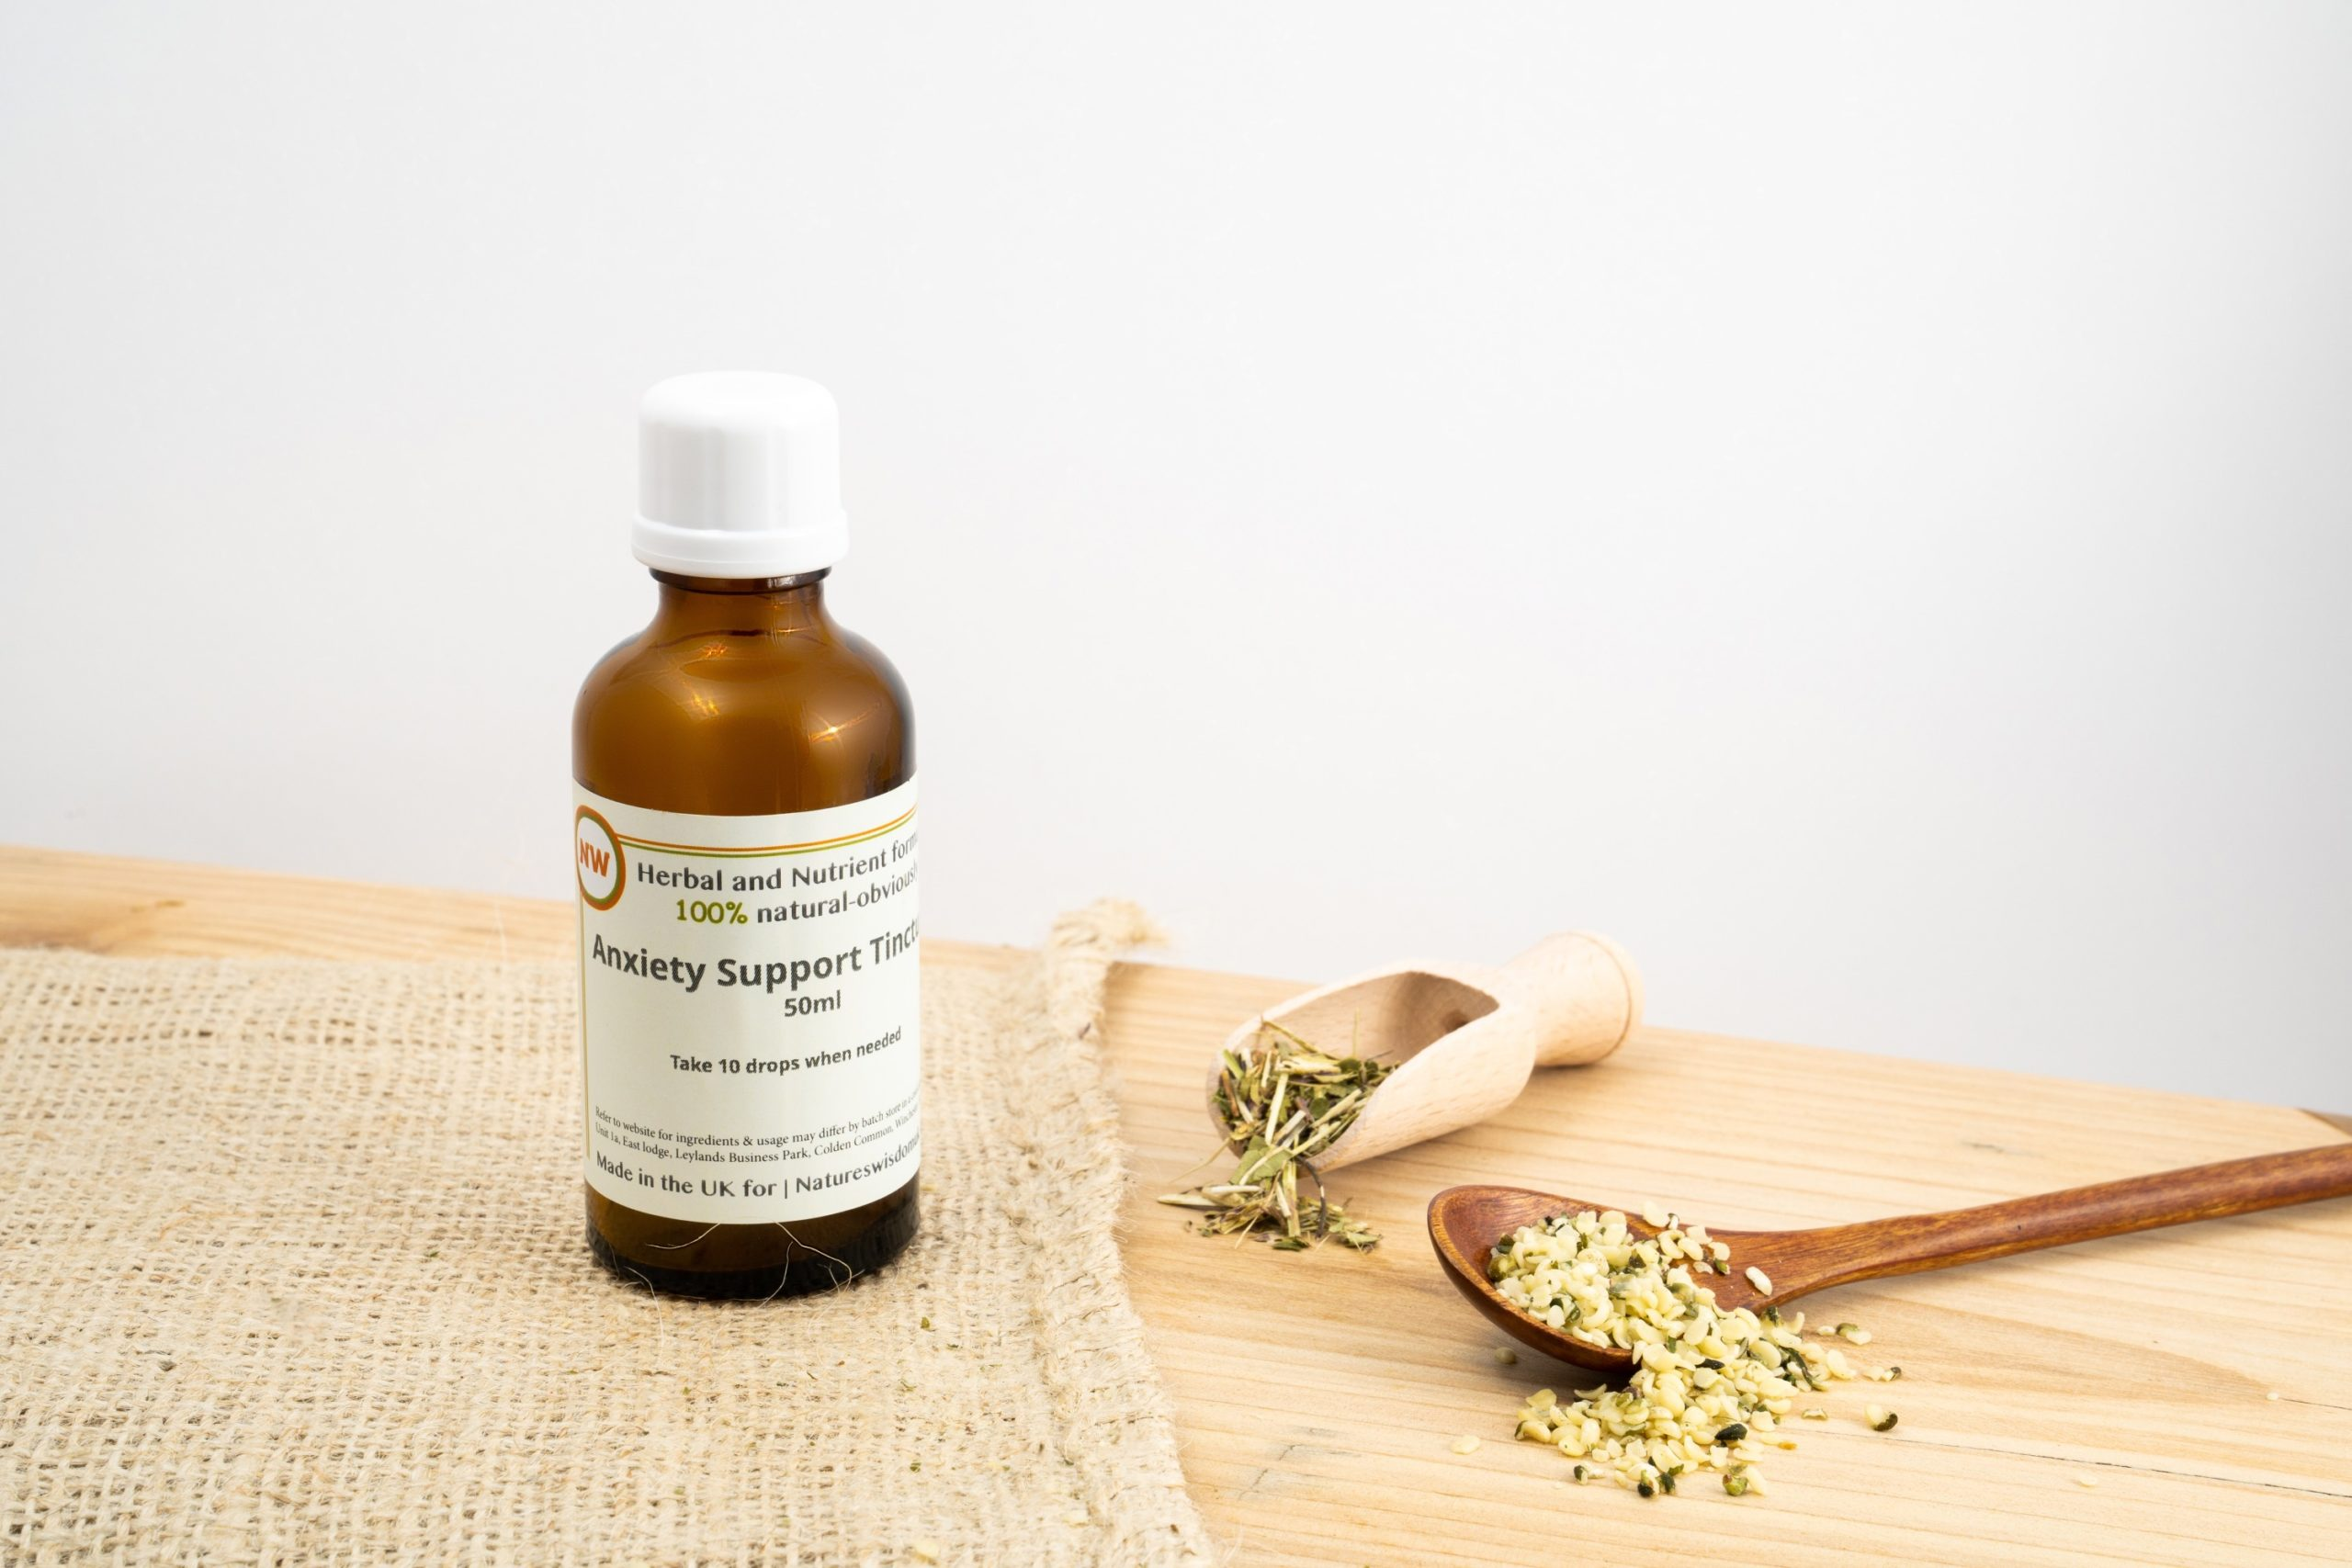 Anxiety Support Tincture